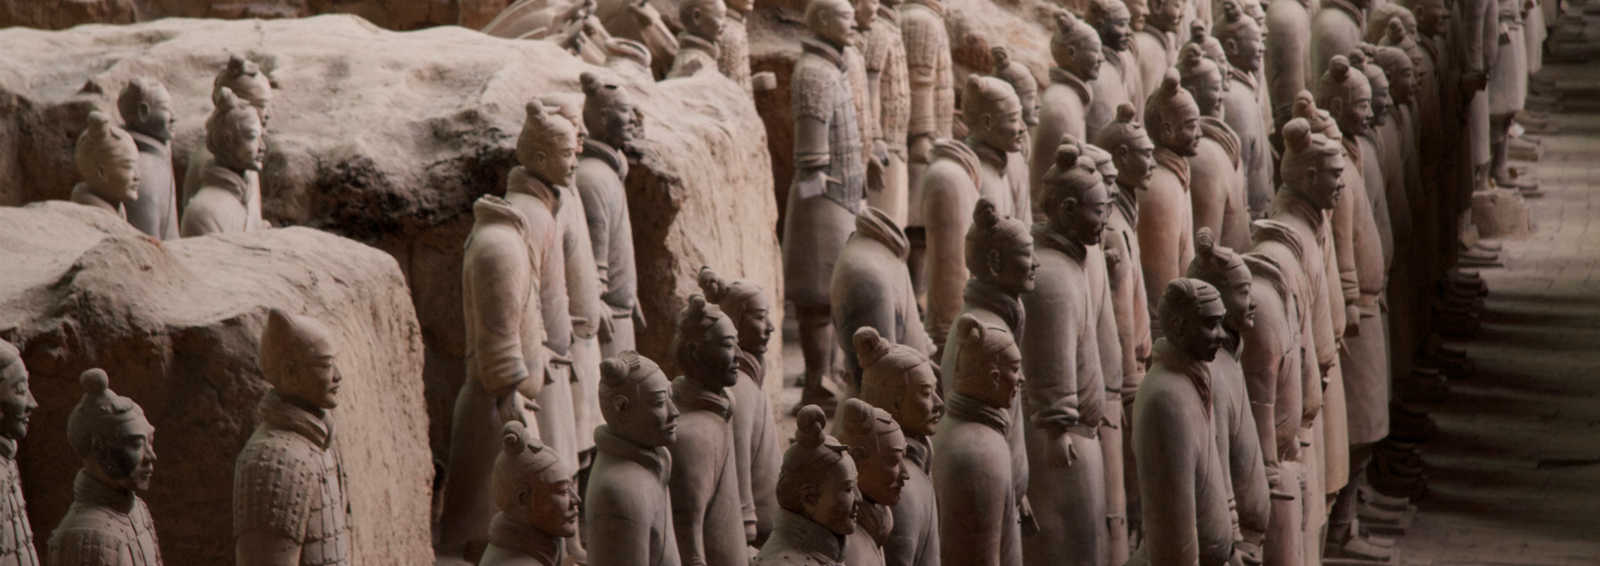 The Terracotta Warriors, Xian